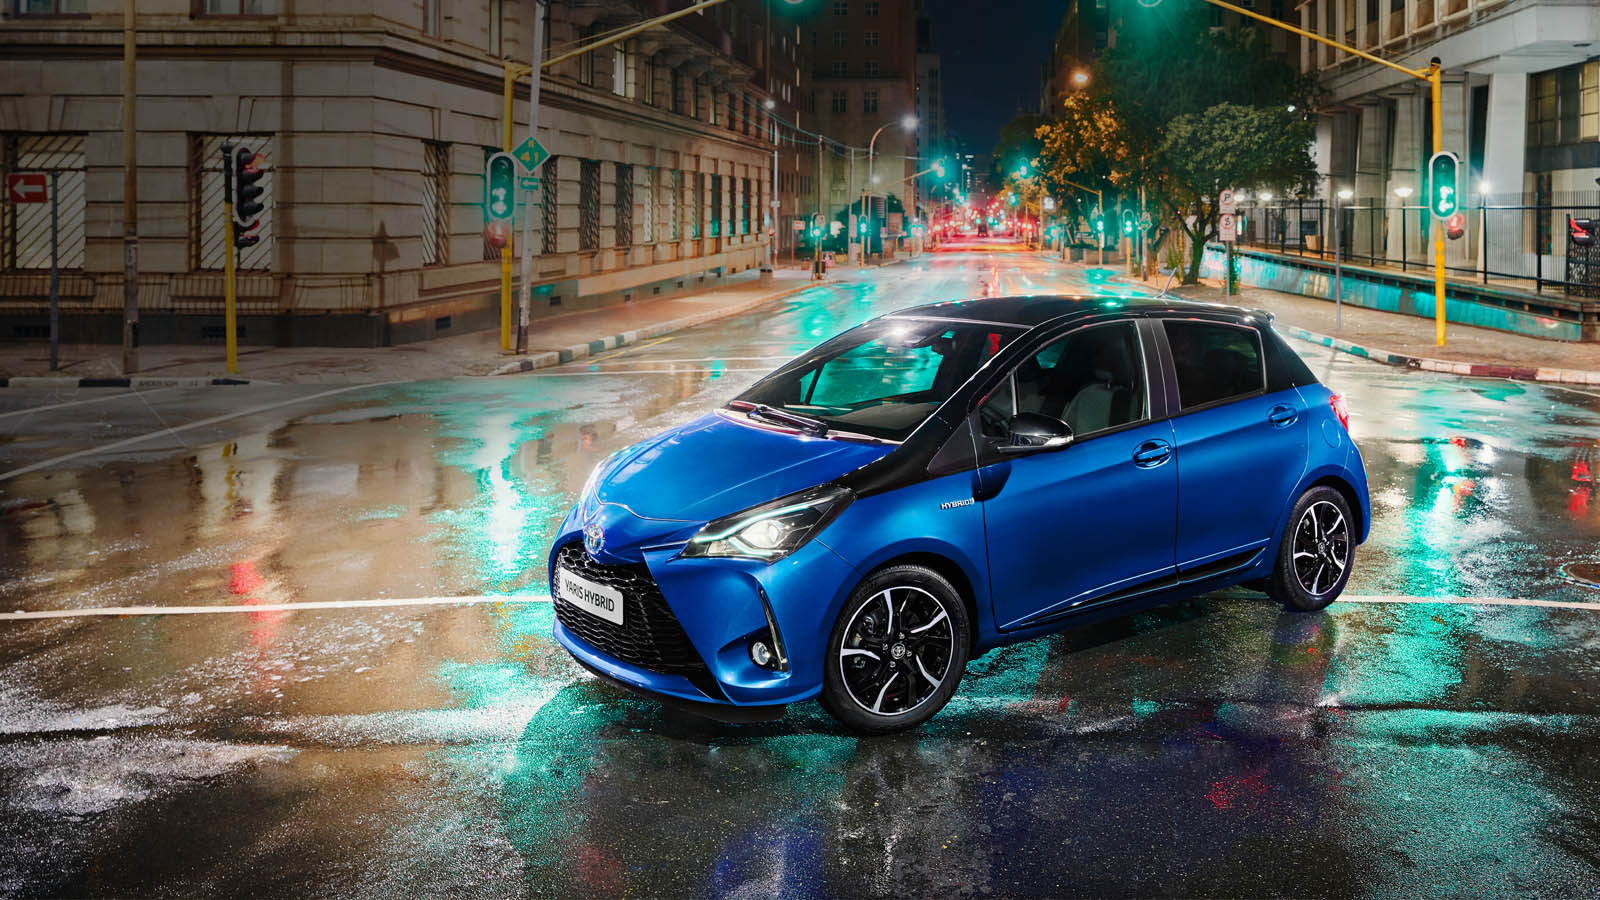 new toyota yaris 2017 available to order toyota ireland cogans. Black Bedroom Furniture Sets. Home Design Ideas